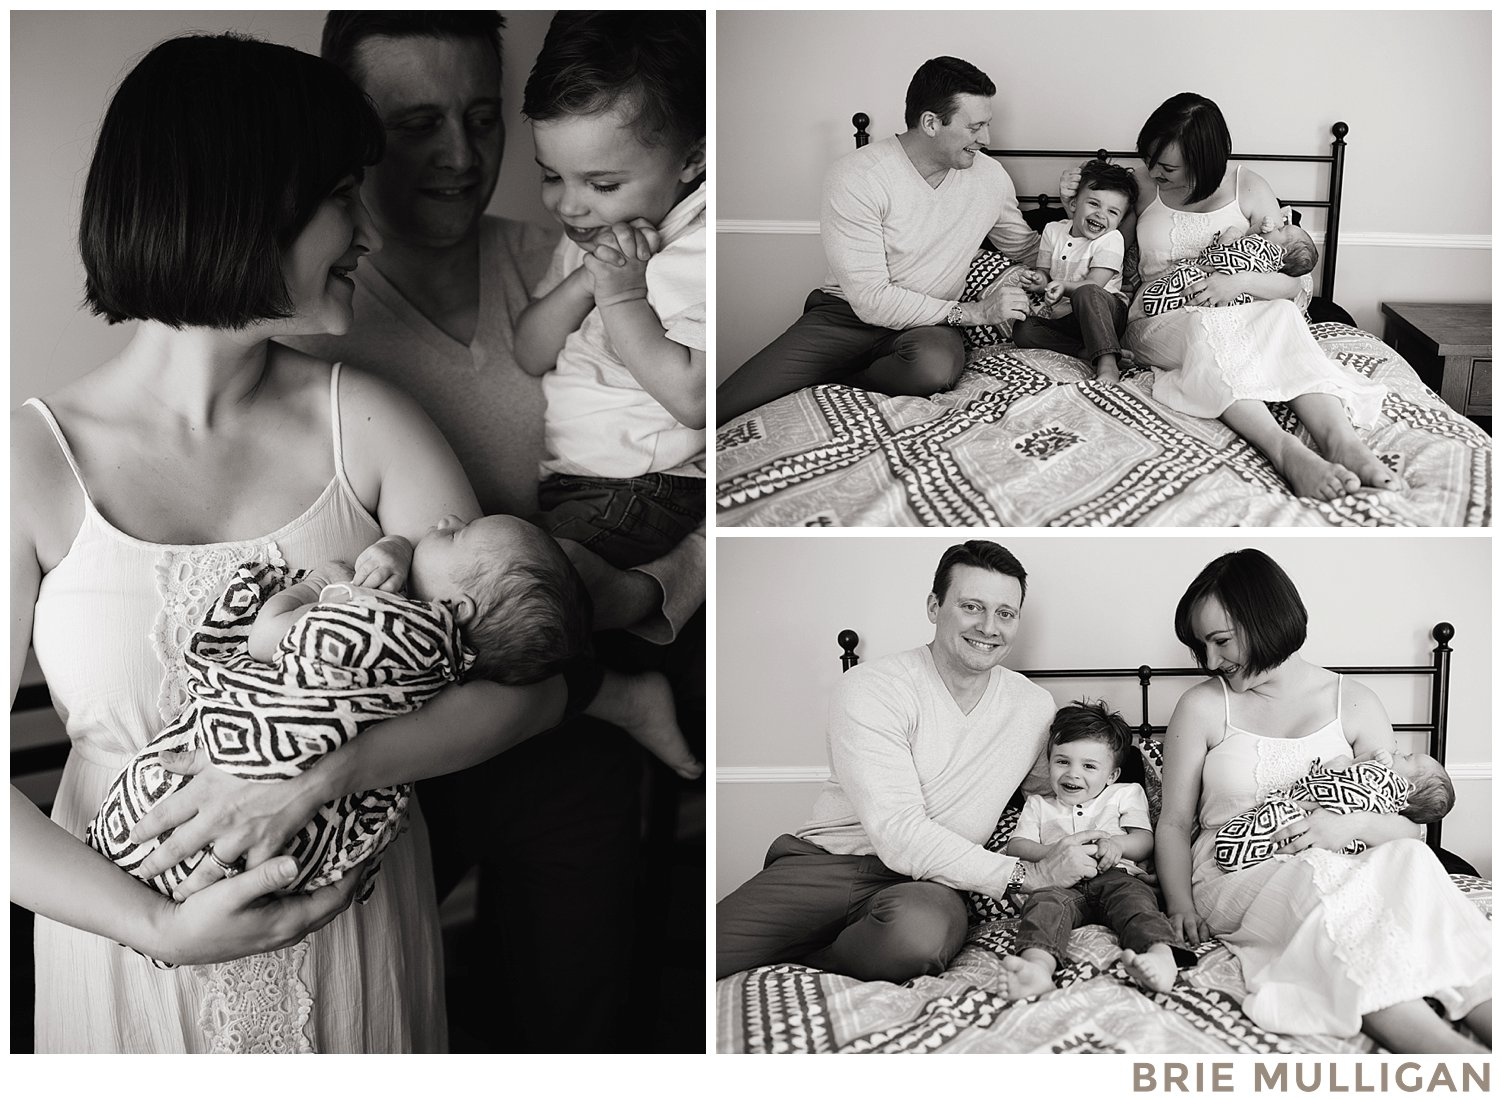 Brie-Mulligan-Family-and-Newborn-Photographer-Montclair-New-Jersey-Northern-NJ-Essex-County-and-NYC_0202.jpg